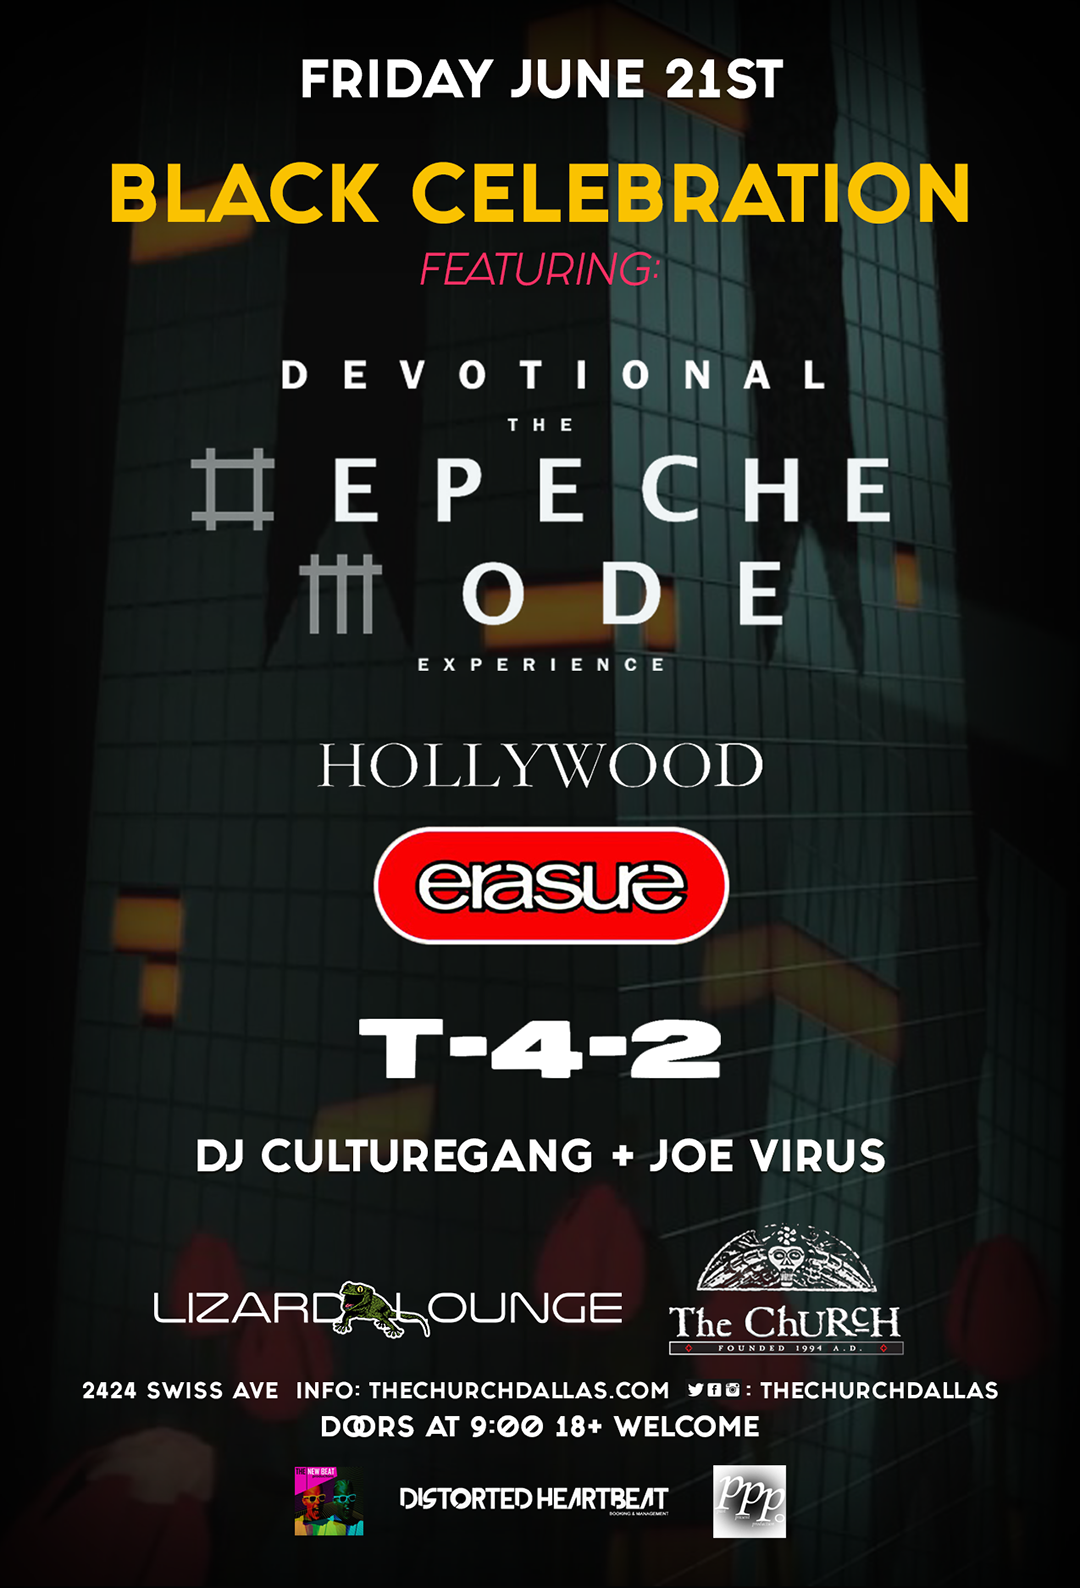 06.21.2019 - Devotional: The Depeche Mode Experience, Hollywood Erasure and T42